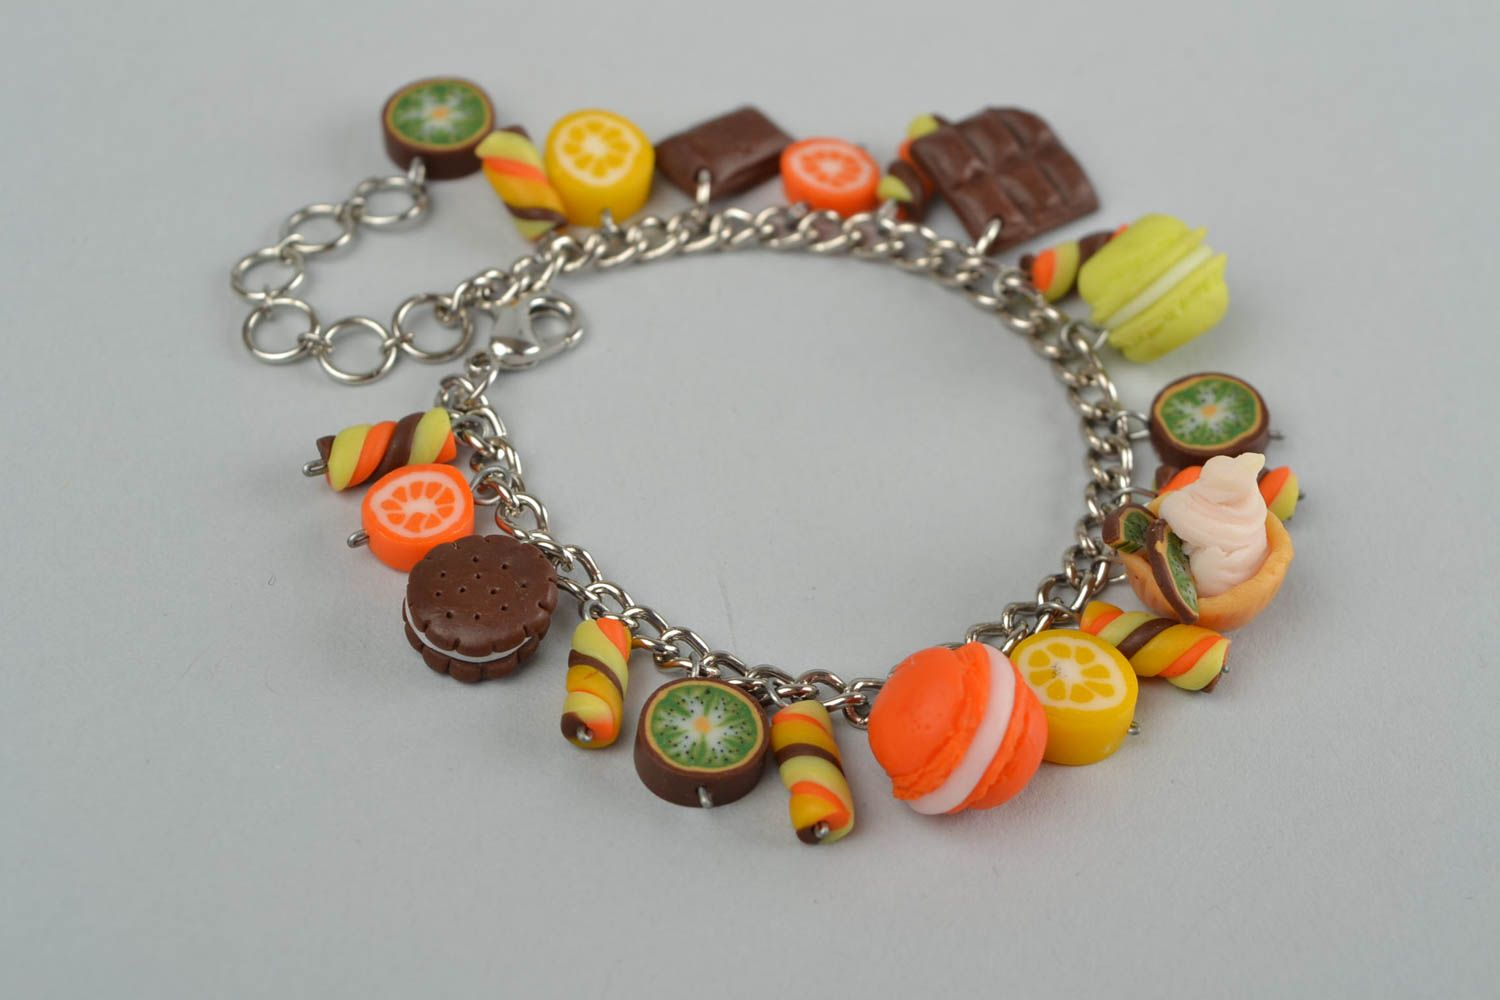 Handmade metal chain wrist bracelet with polymer clay charms Candies for women photo 4